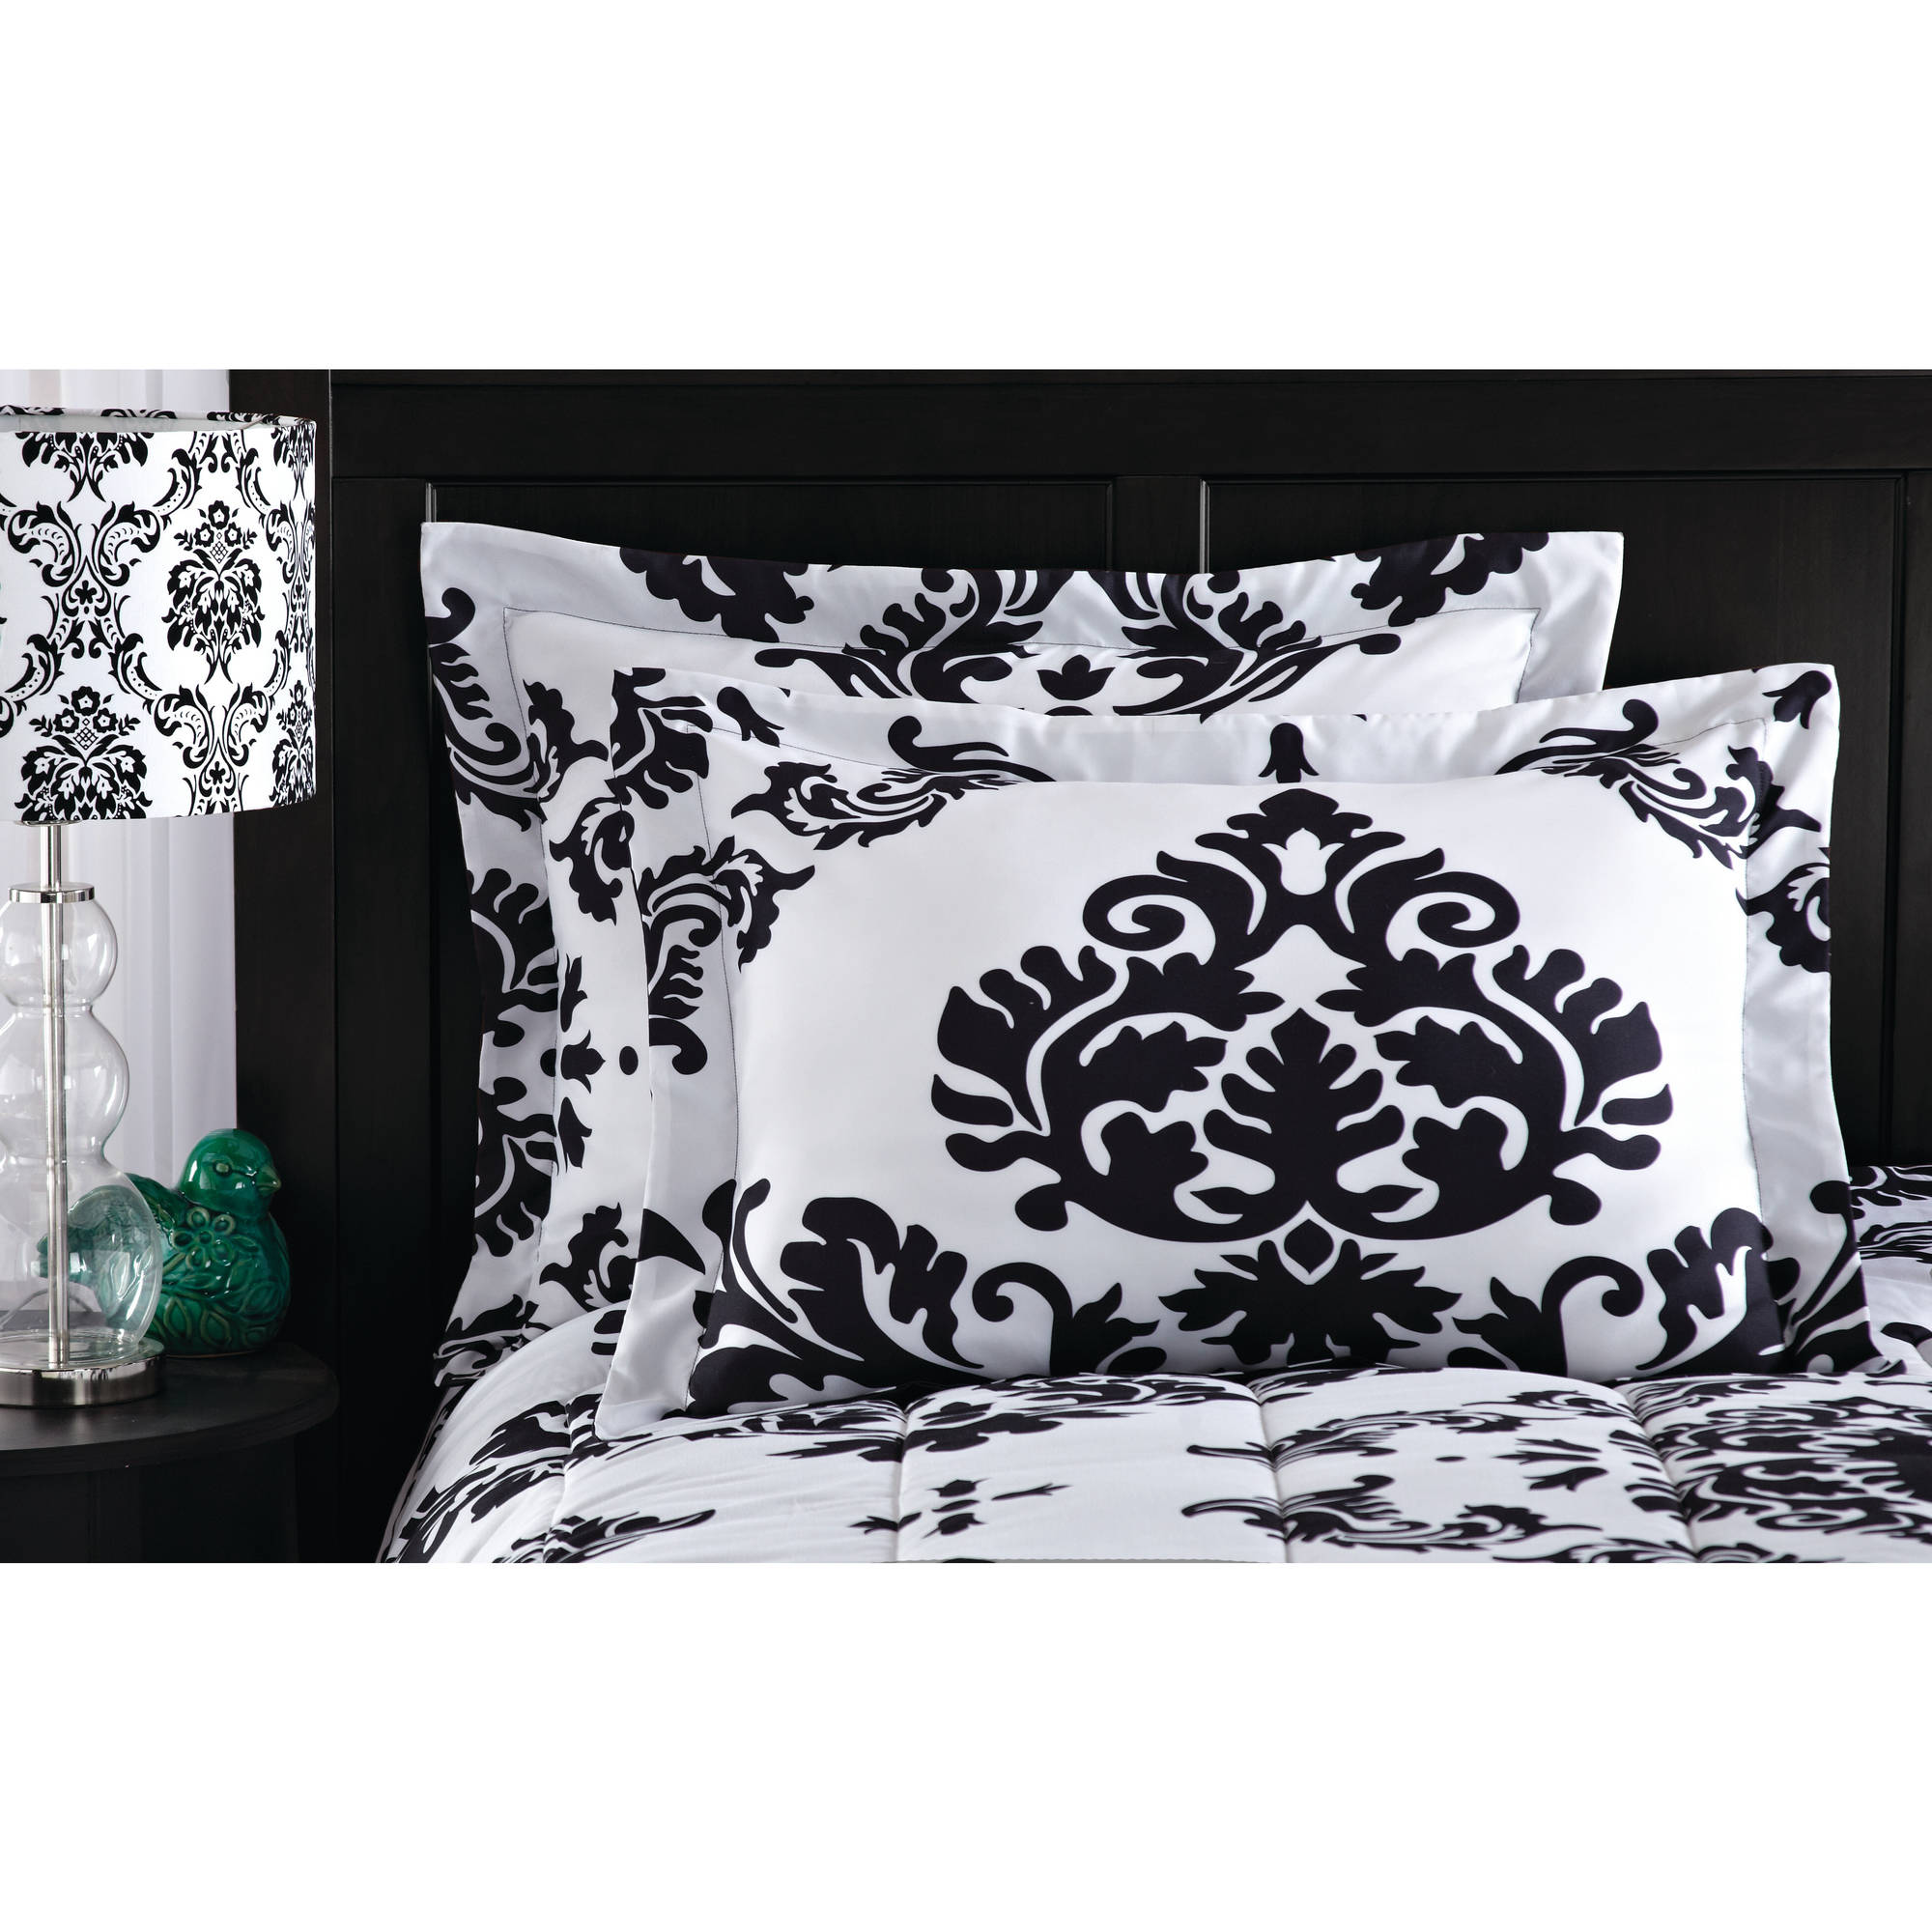 mainstays classic noir bed in a bag bedding set - walmart